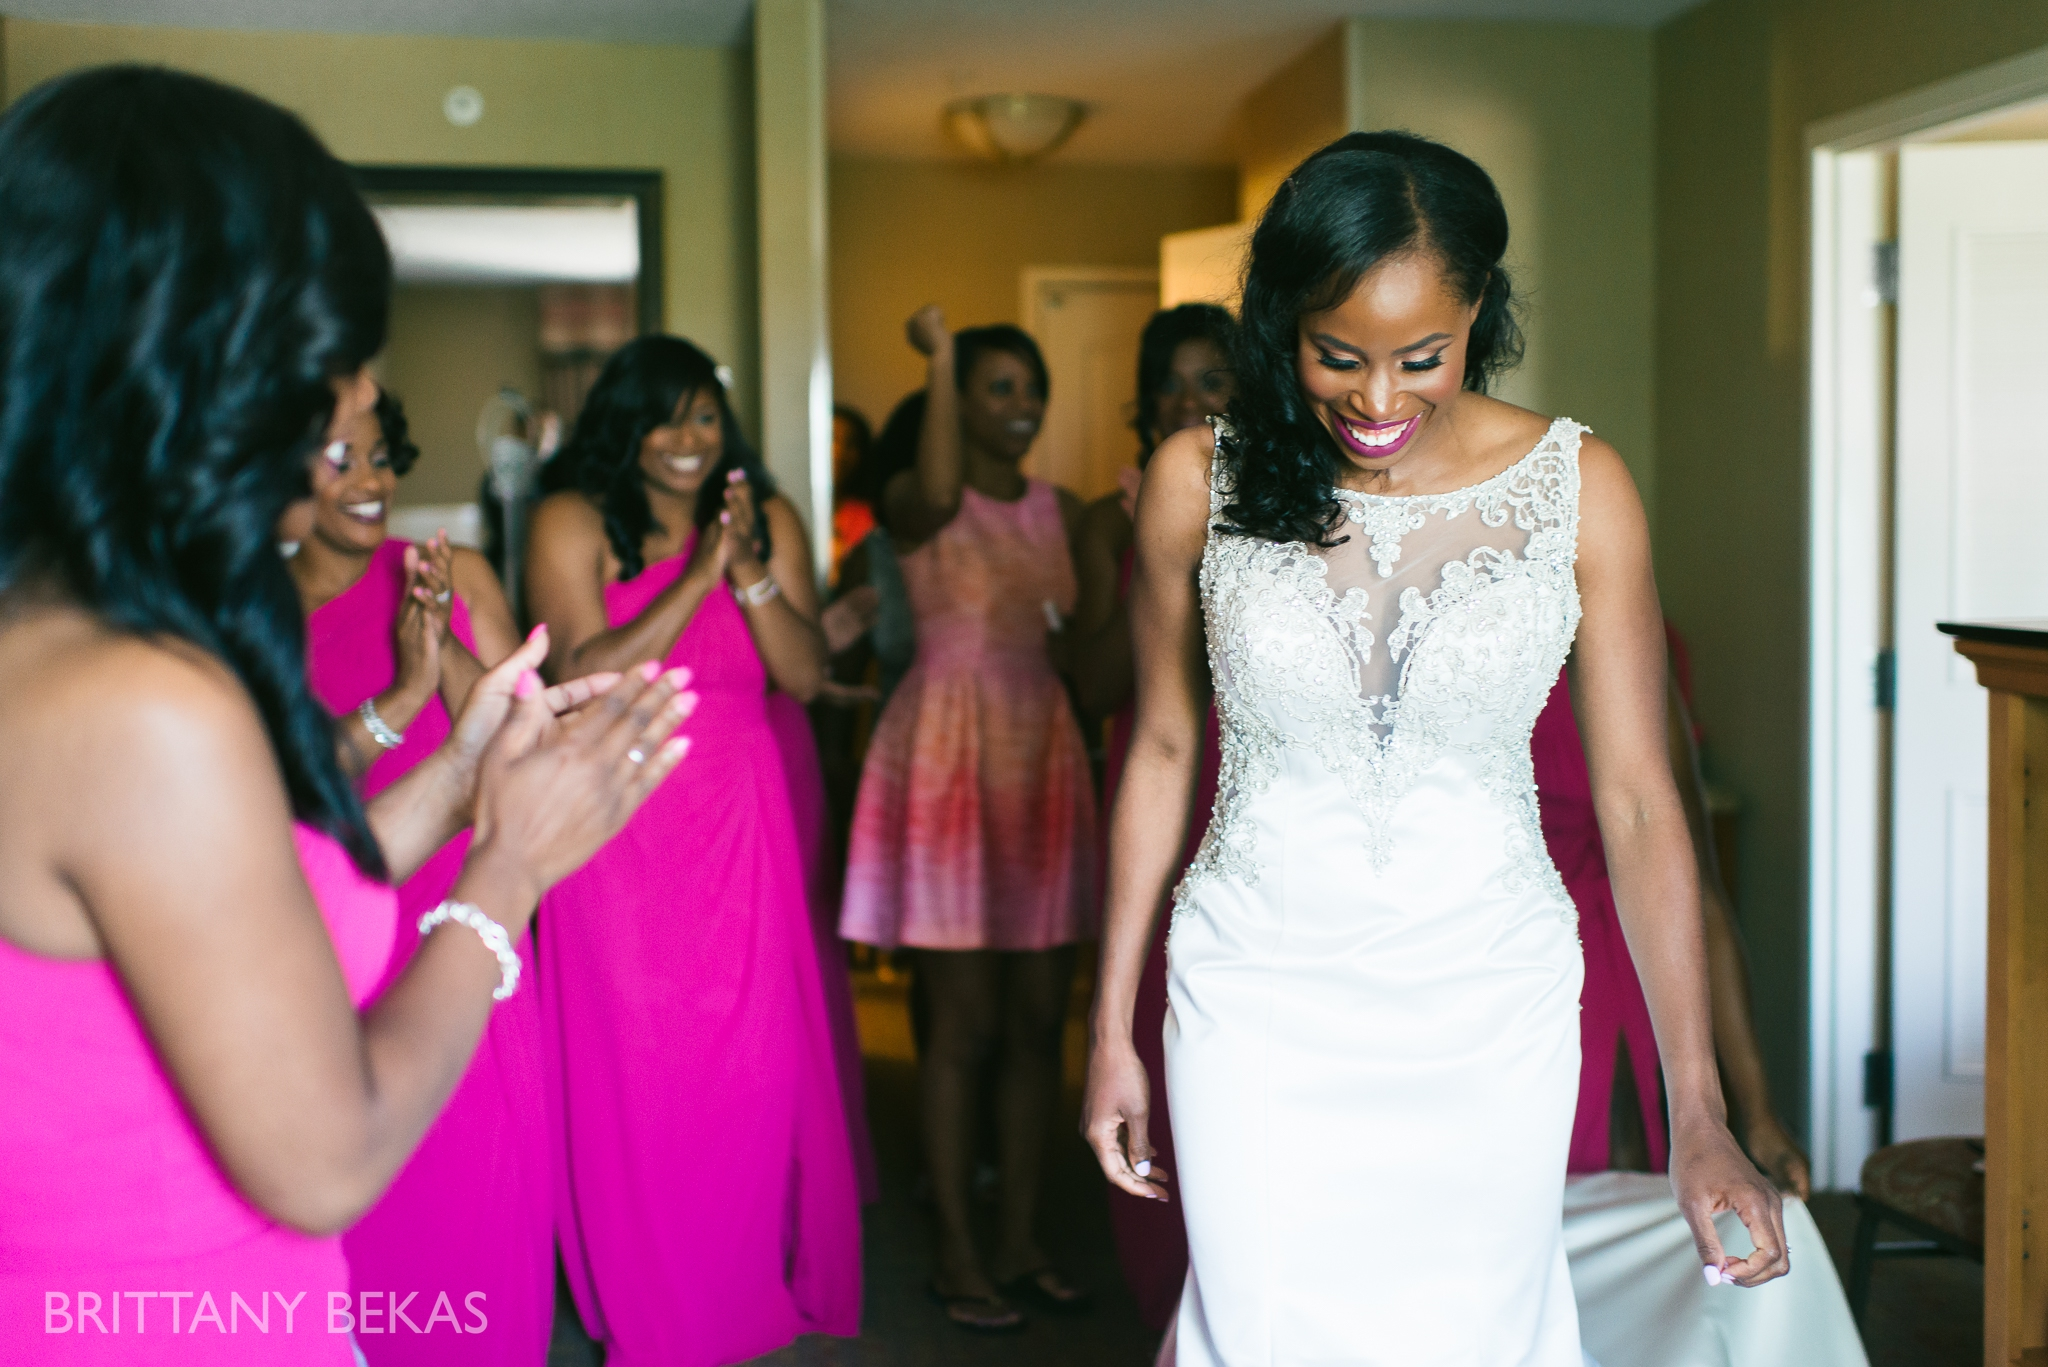 Patrick Haley Mansion Wedding - Brittany Bekas Photography_0003